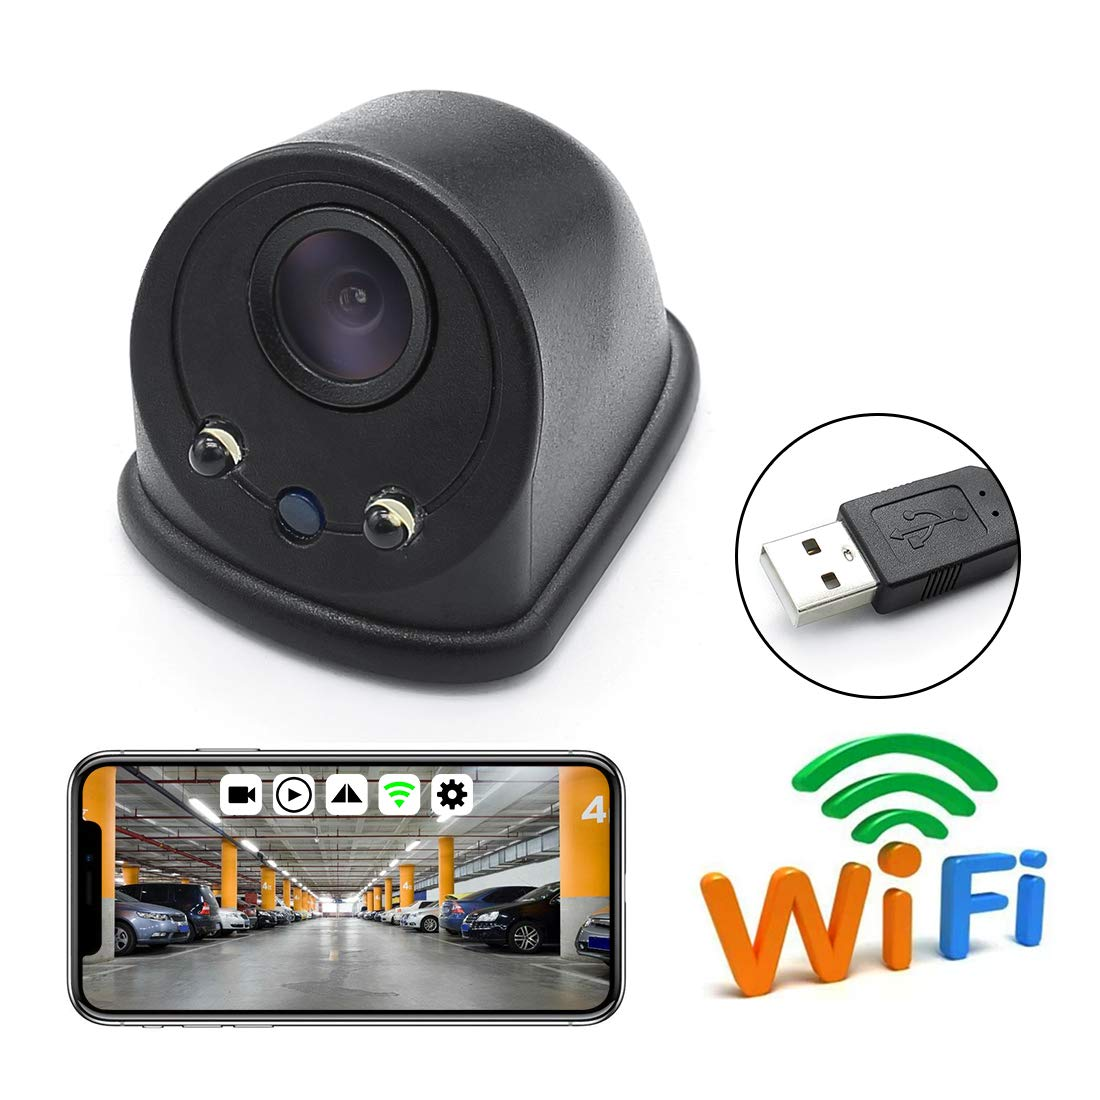 Amazon.com: GreenYi Wireless Blind Spot Camera, WiFi Car USB ...